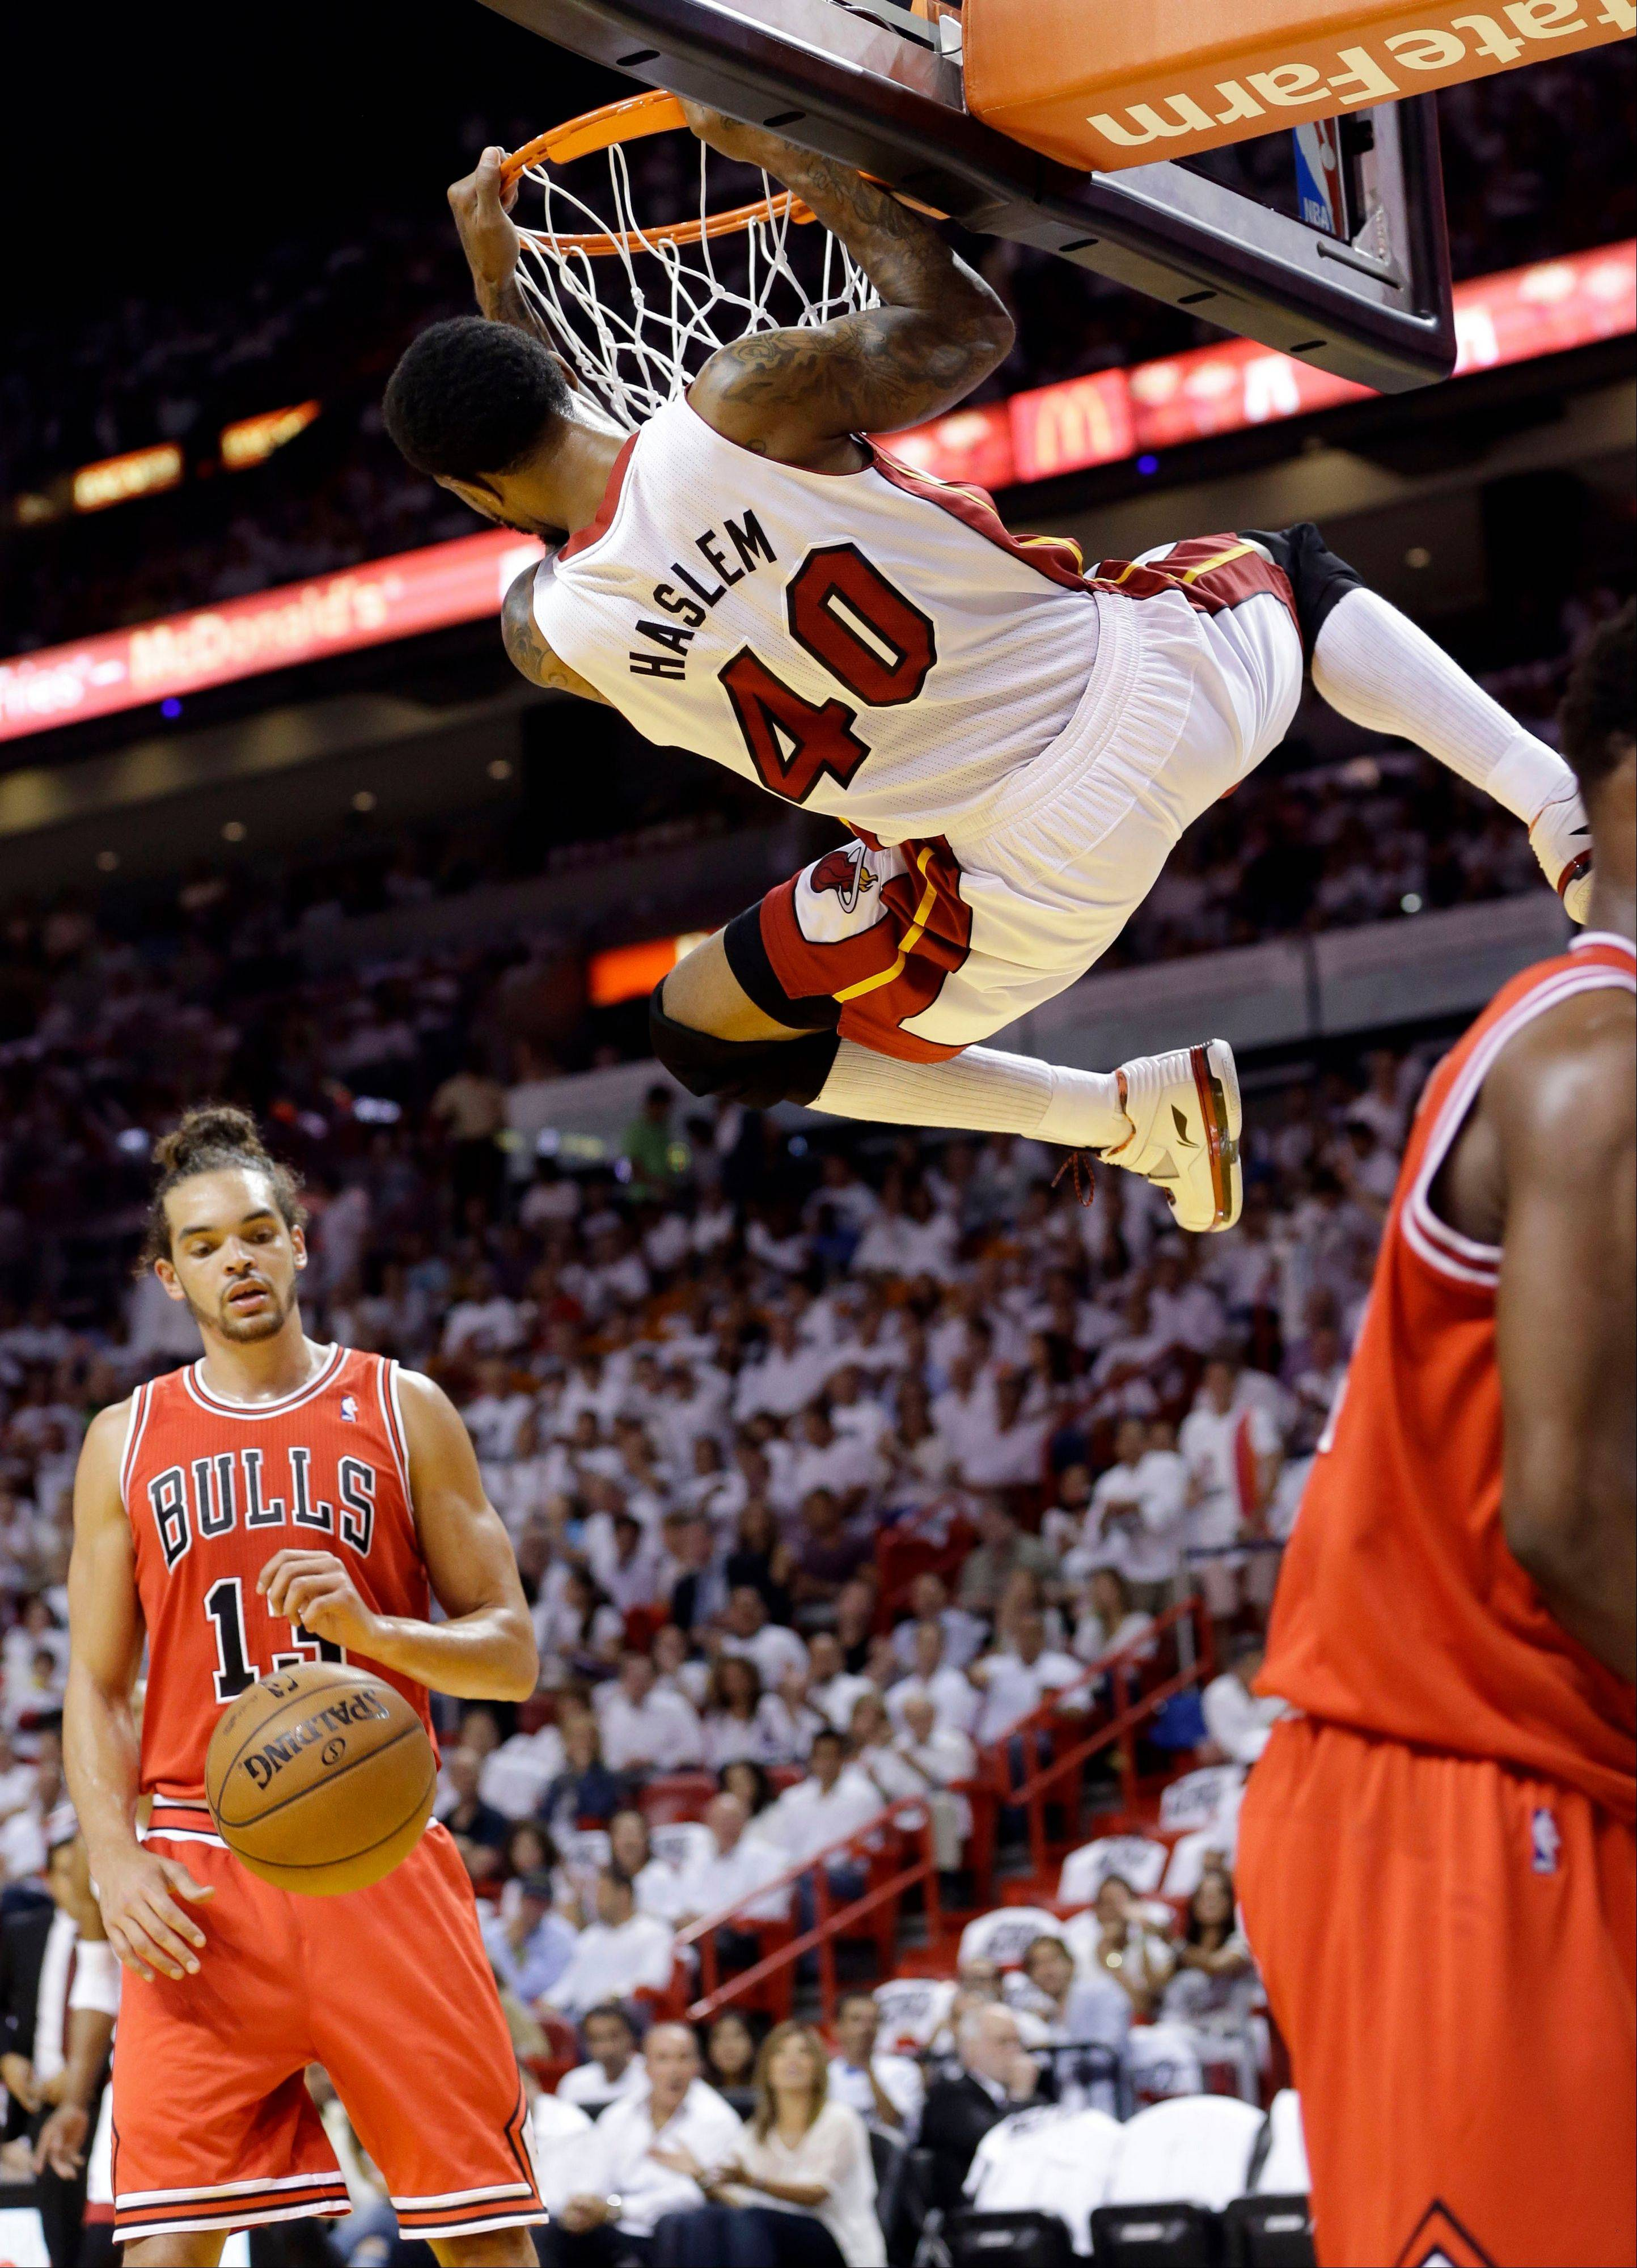 Miami Heat's Udonis Haslem (40) dunks in front of Chicago Bulls' Joakim Noah (13) during the first half of Game 5 of an NBA basketball Eastern Conference semifinal, Wednesday, May 15, 2013, in Miami.